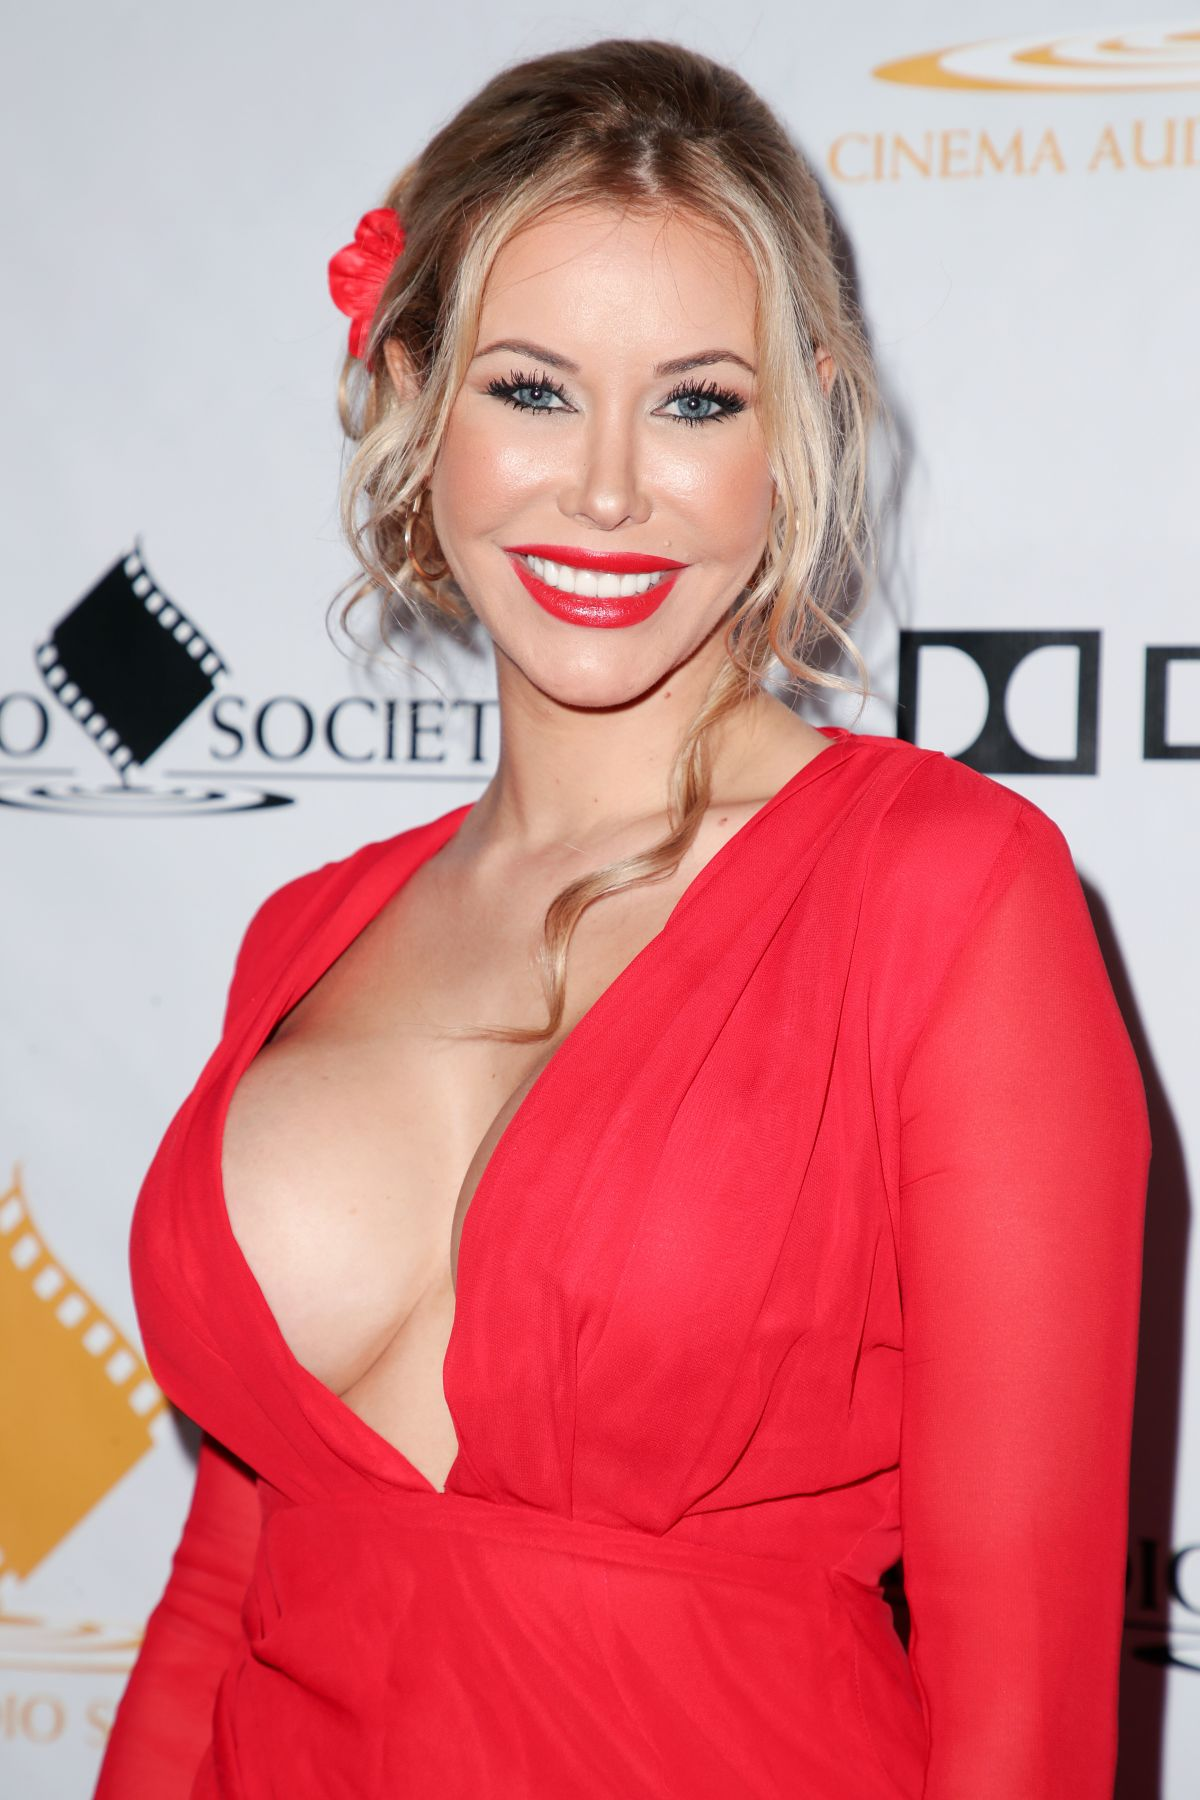 Kennedy Summers nudes (31 pics) Erotica, 2017, braless